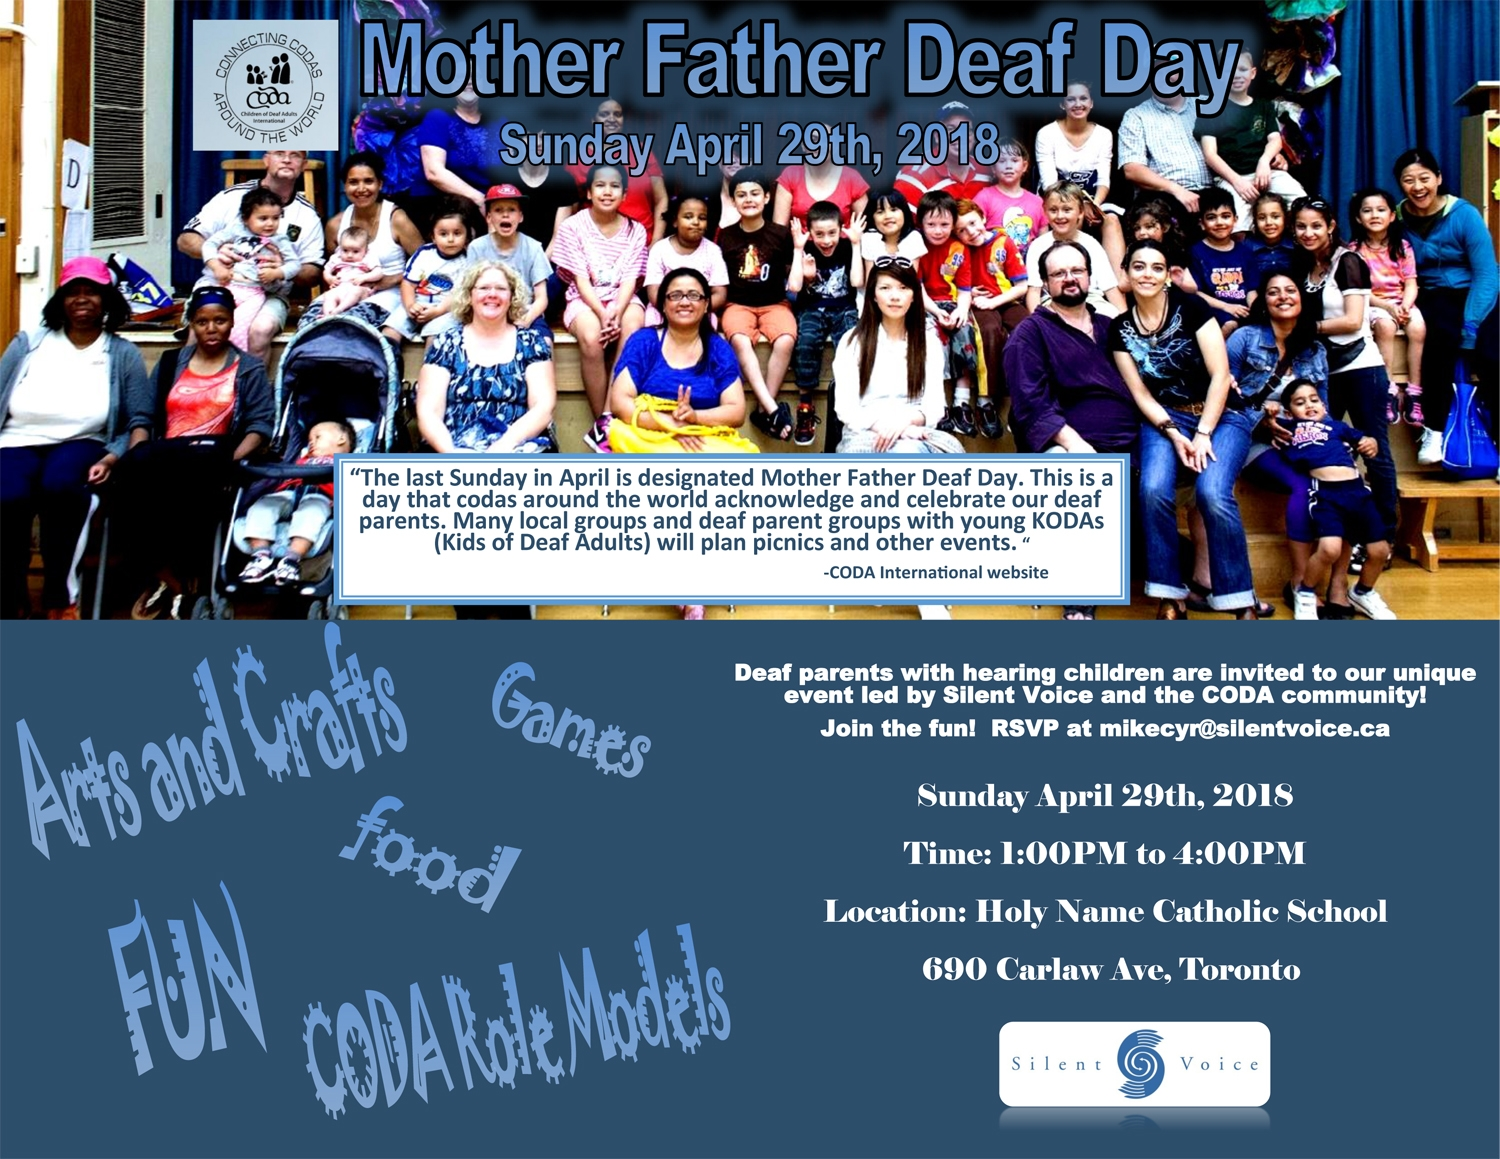 Mother Father Deaf Day Bob Rumball Organizations